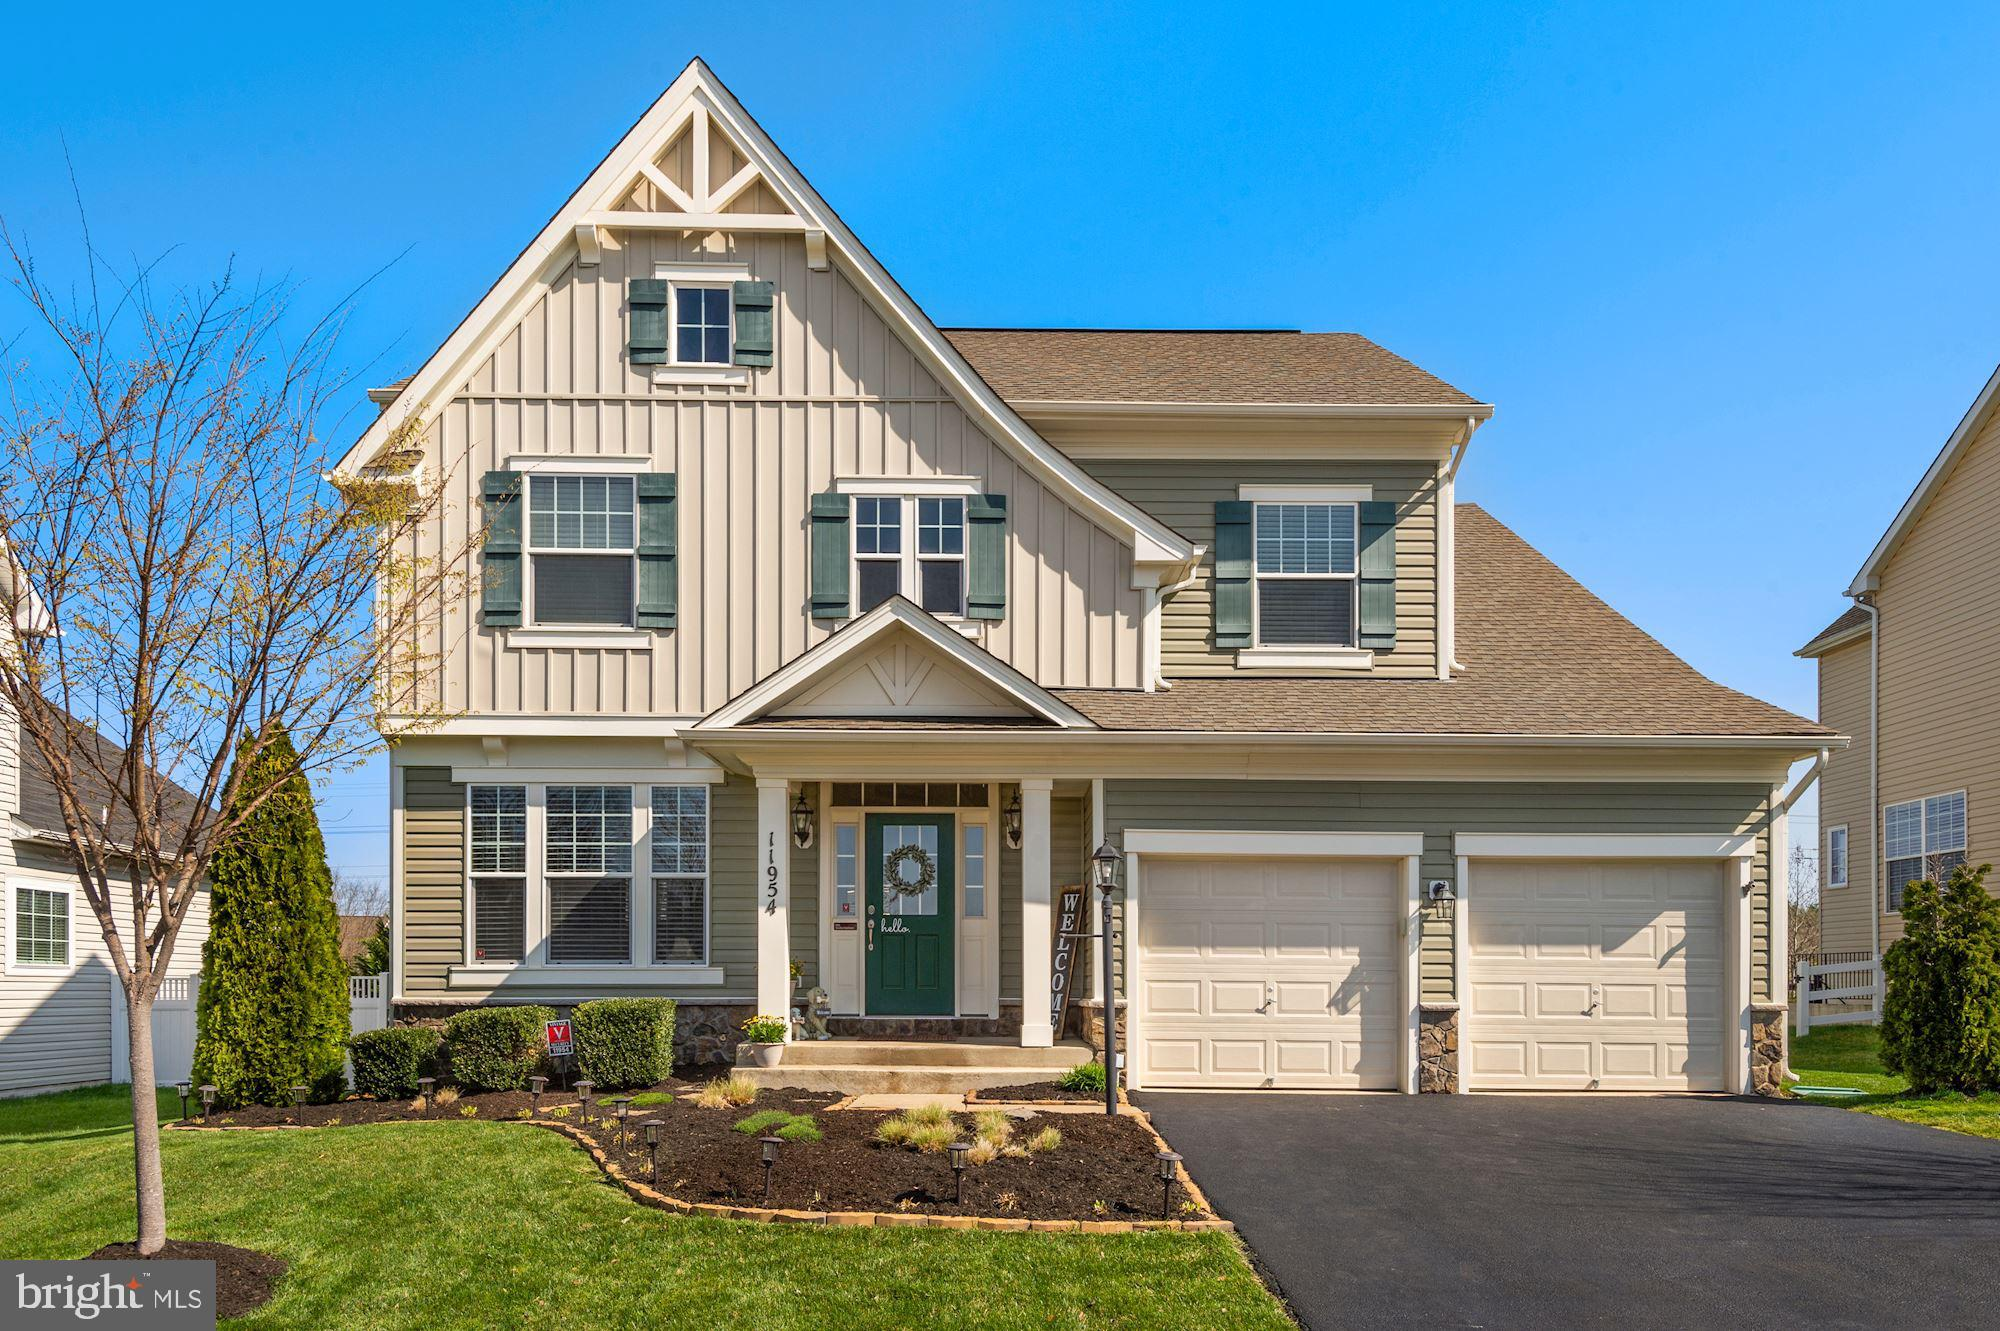 """Welcome to Avendale! Avendale is not your typical Northern VA community, it's a neighborhood filled with fun activities and located minutes from Shopping, Gyms, Restaurants and Entertainment, (think walkability score) Trails, Playgrounds, Dog Park, Basketball Court and PicNic Stations are all part of the Community! This  Waverly model by Brookfield Homes was designed with a nod to the Craftsman style! The Waverly features a sophisticated Floorplan that has room for everyone! The selections in this home are OFF THE CHARTS! Gorgeous wood flooring throughout the main level and a Kitchen that is Simply Impressive! The Family Room is generous in size with a 2 foot extension and adorned with a stunning Stone Gas Fireplace. There is also a Study on the Main Level that offers a great Office space or Home Schooling Center. Upstairs are FOUR bedrooms including a Primary Bedroom and Bath that are large and luxurious! The Loft area is unique and could serve as a Study space, Second Office or additional Family Room, the options are limitless! Downstairs is a HUGE finished Rec Room and Storage area, plenty of space for overflow entertaining. Speaking of entertaining, the backyard is an entertainers dream with privacy and plenty of space for a Bar B Que or beverages by the Fire Pit! Award winning schools and EASY access to Commuter Routes and the VRE complete the package. This home is truly """"move in"""" ready!"""